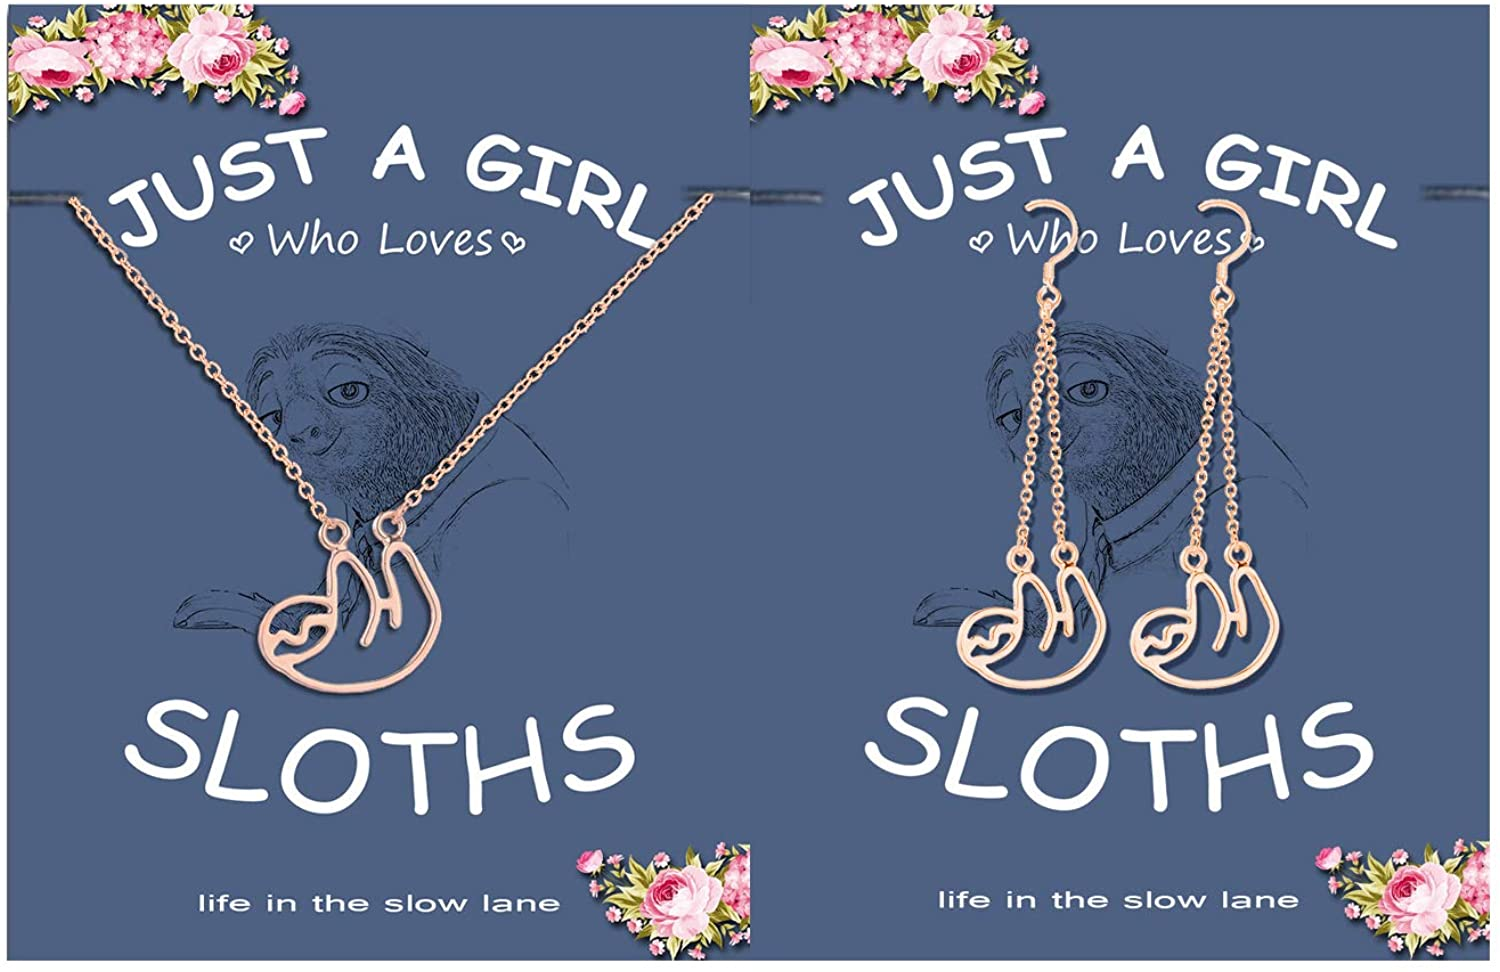 Charm Animal Sloth Drop Earrings Necklace Set,Long Chain Tassel Sloth Earrings Cute Sloth Pendant Necklace with Message Card for Women Teen Girls Child Inspired Jewelry